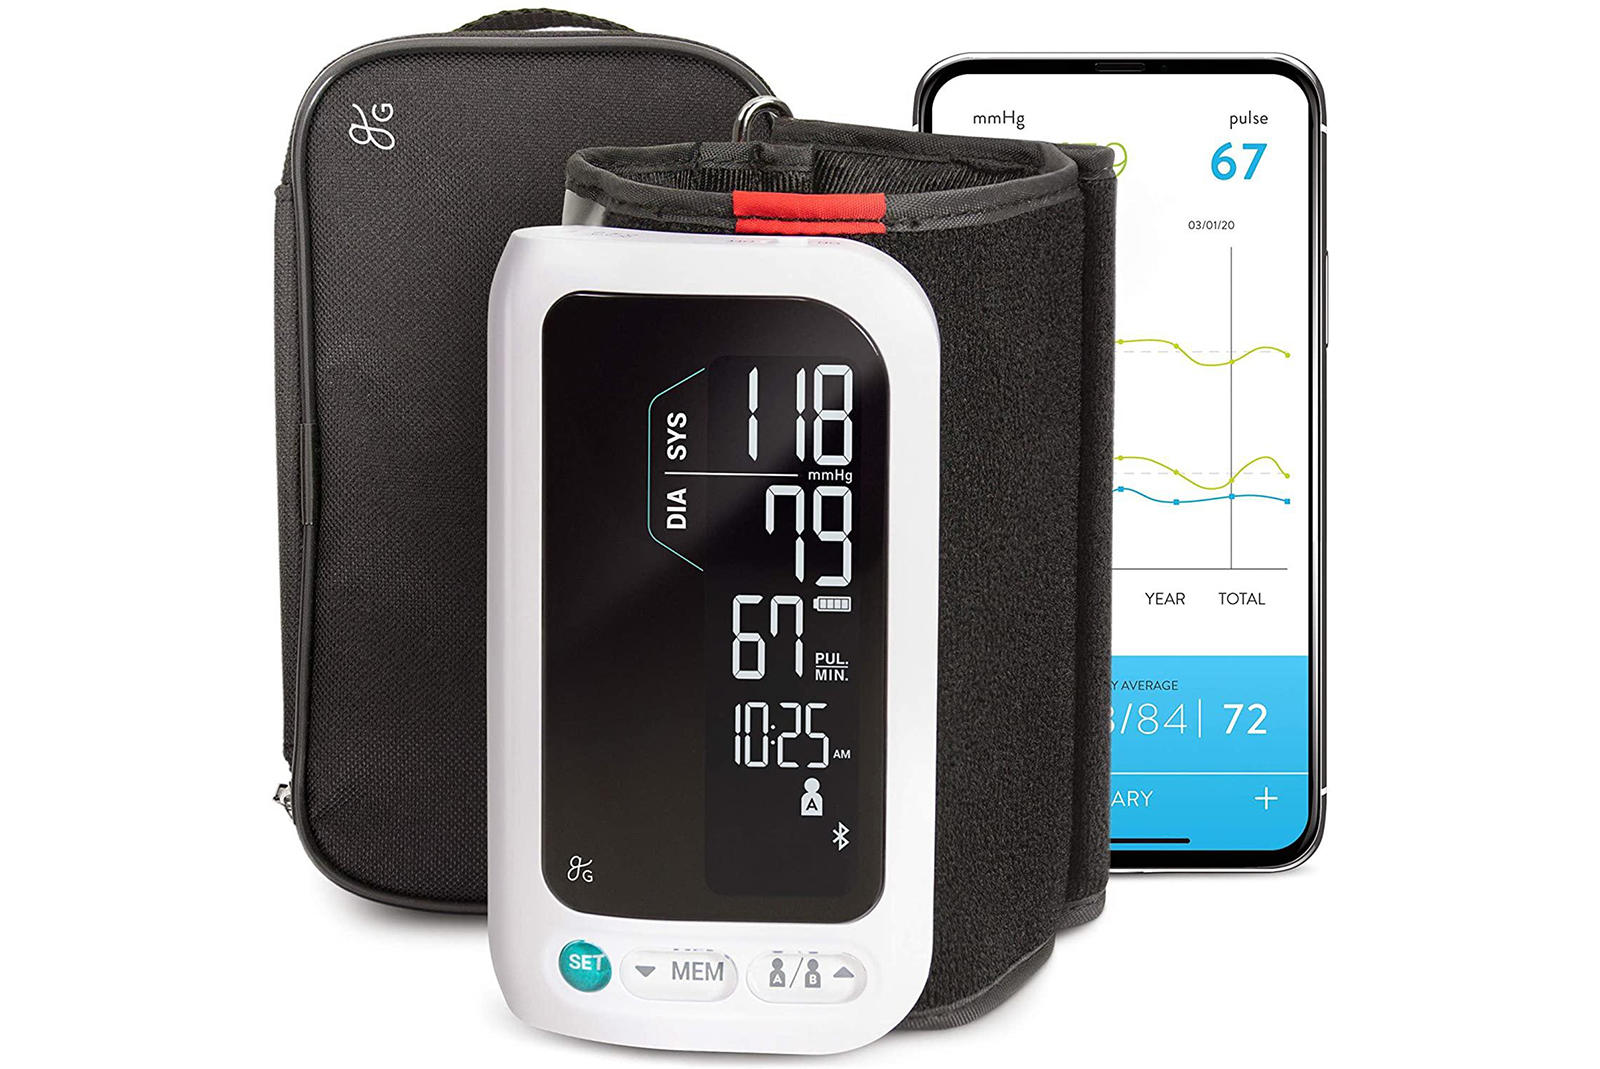 best-blood-pressure-monitor-GreaterGoods-review.jpg